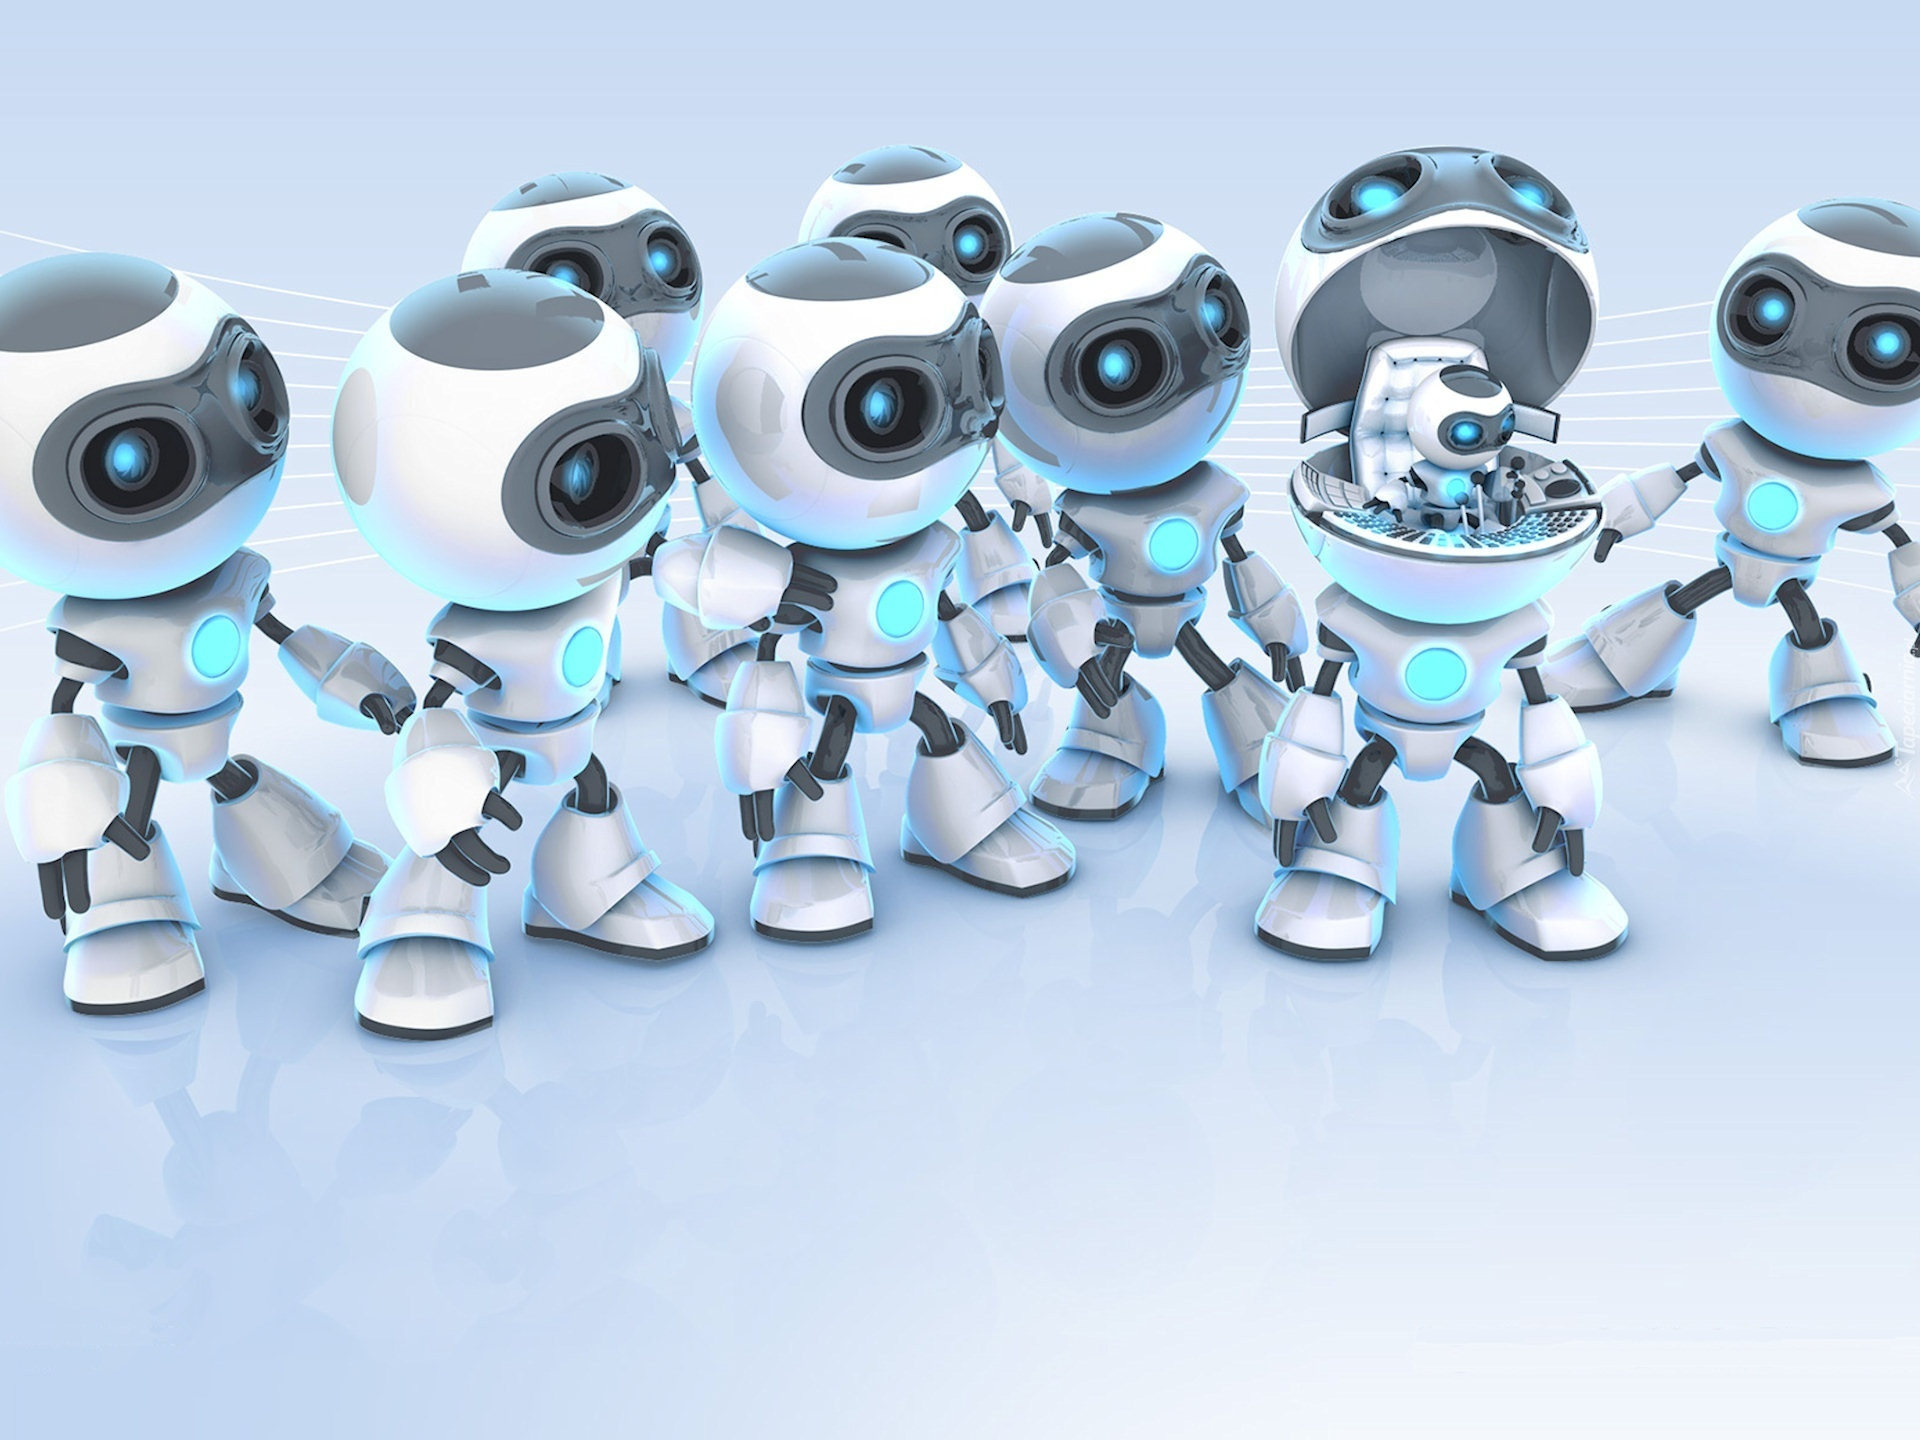 Cute Robot Love Wallpaper Roboty